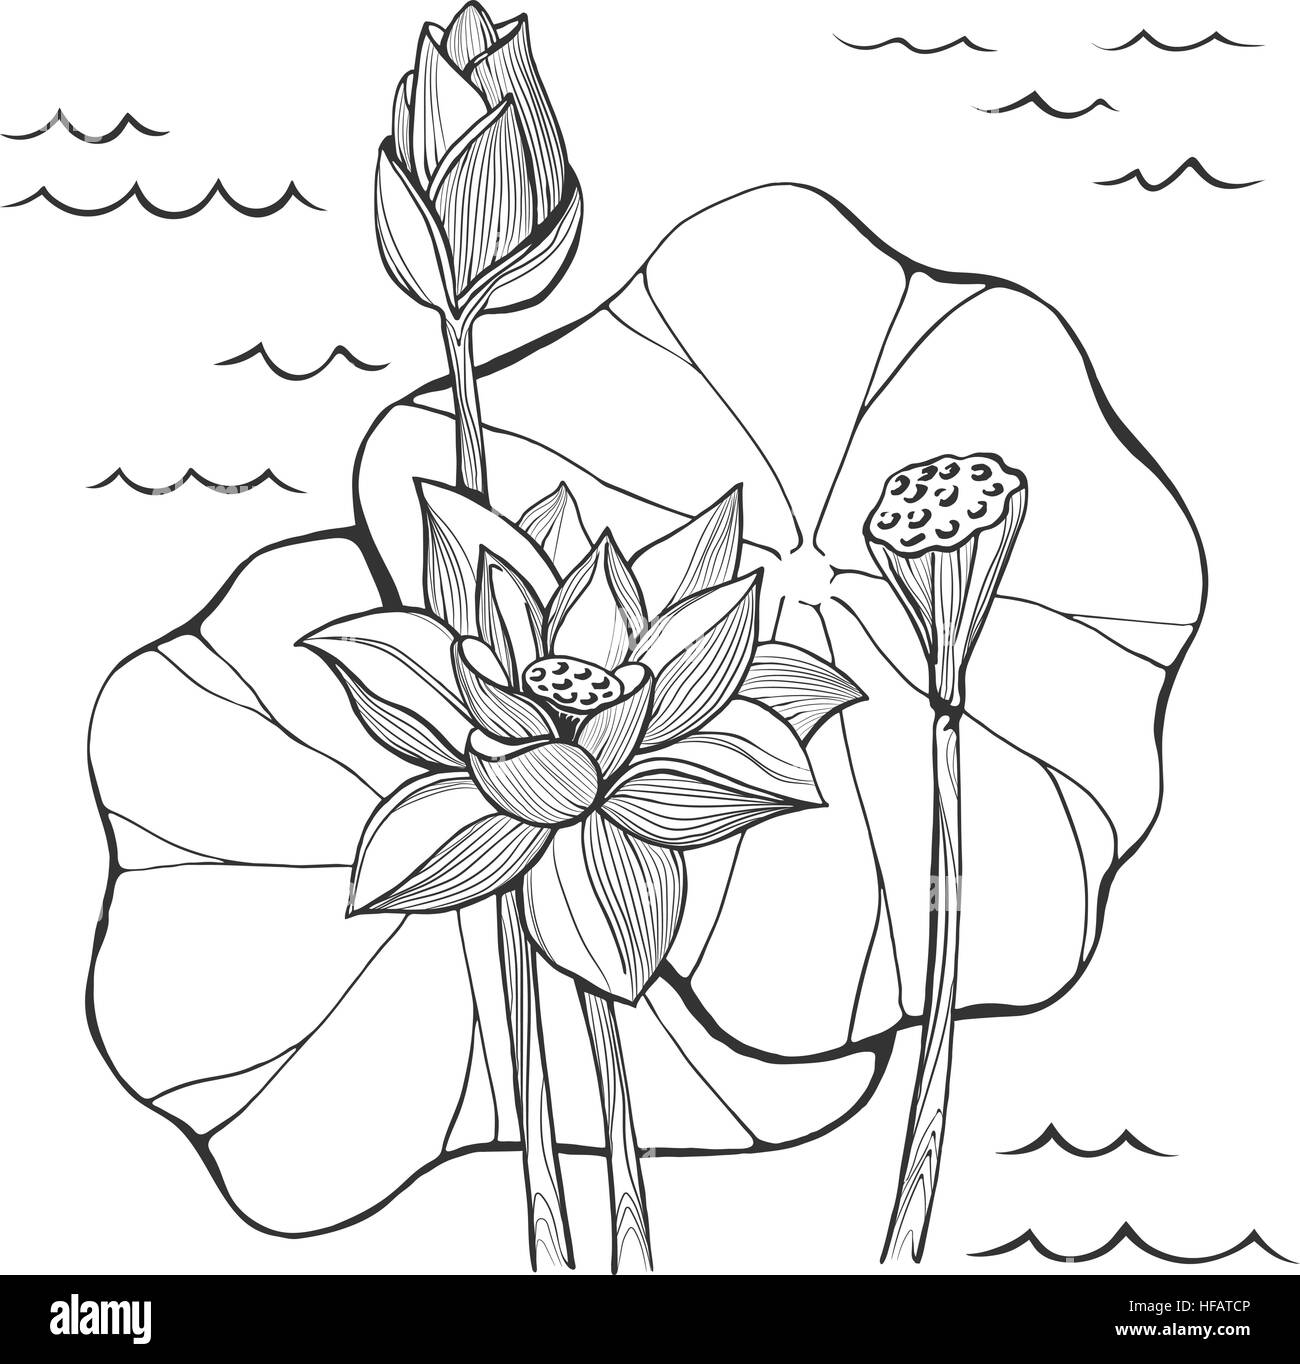 Vector sketch lotus flowers bud and seeds stock vector art vector sketch lotus flowers bud and seeds mightylinksfo